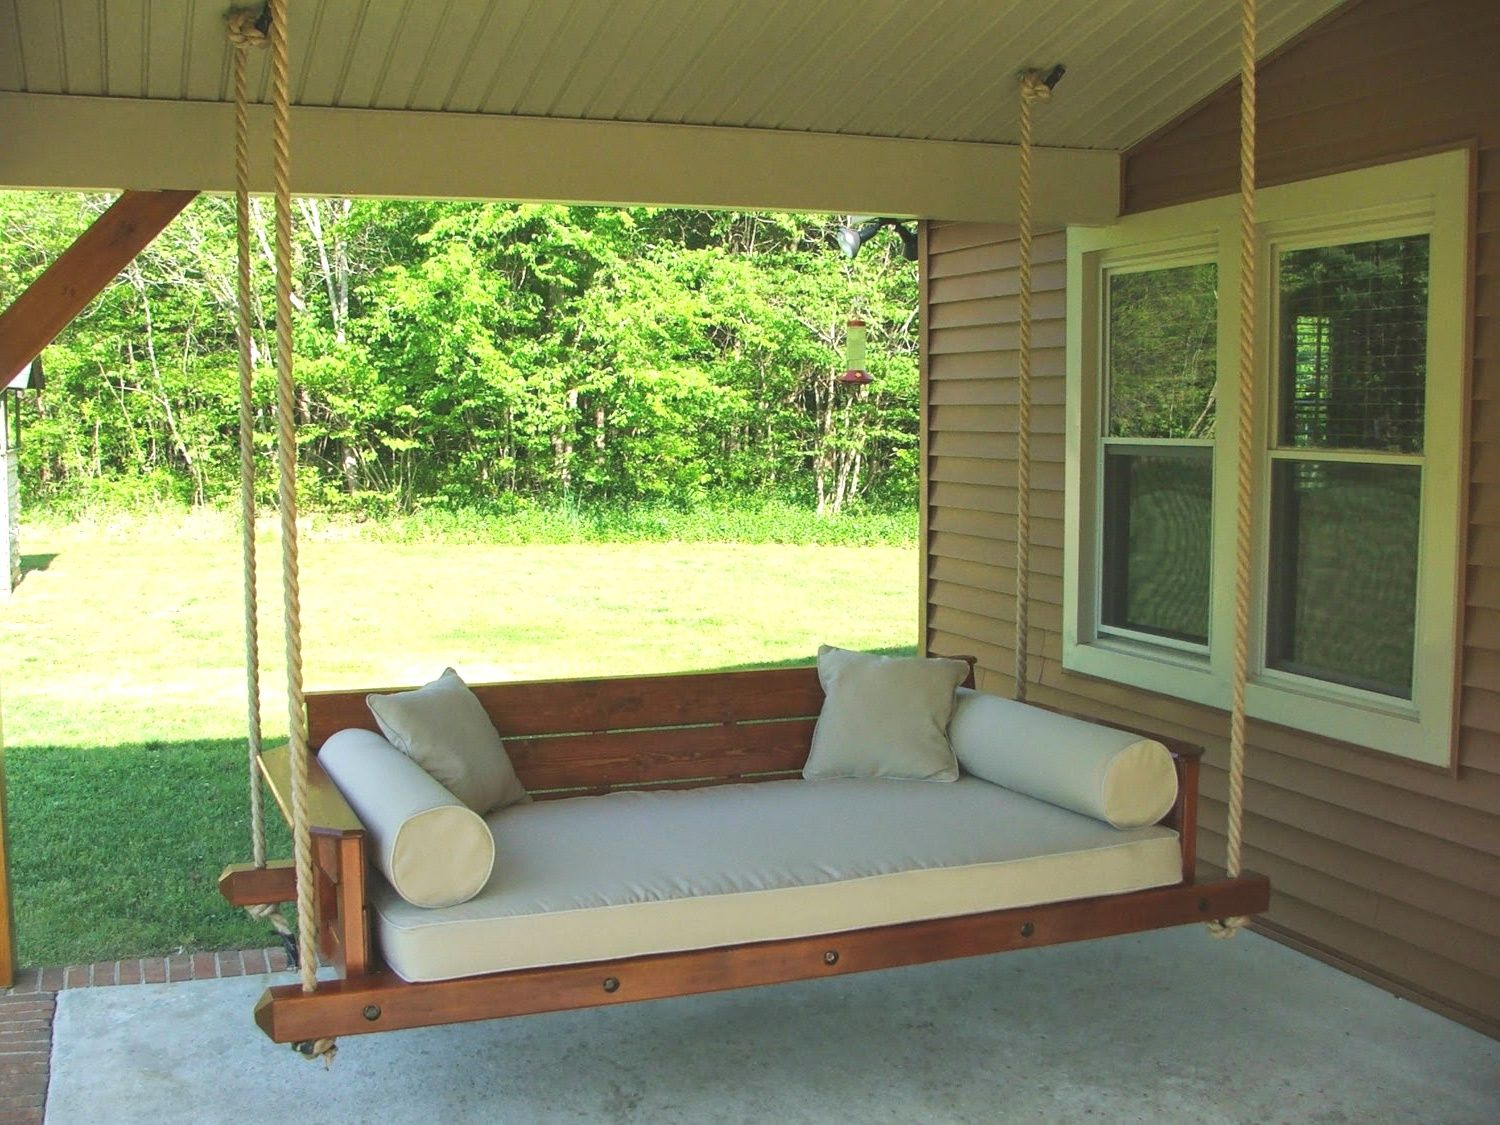 How To Build A Porch Swing Bed Build Your Own Porch Swing Bed Kit Faedaworks In 2020 Outdoor Hanging Bed Porch Swing Bed Porch Swing